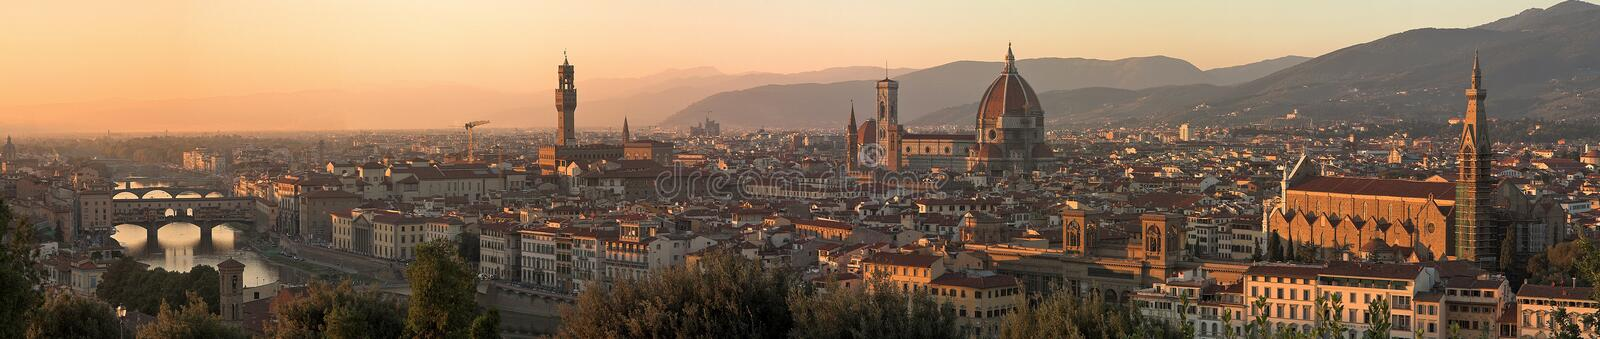 Firenze. This is a panorama photo from Firenze royalty free stock image